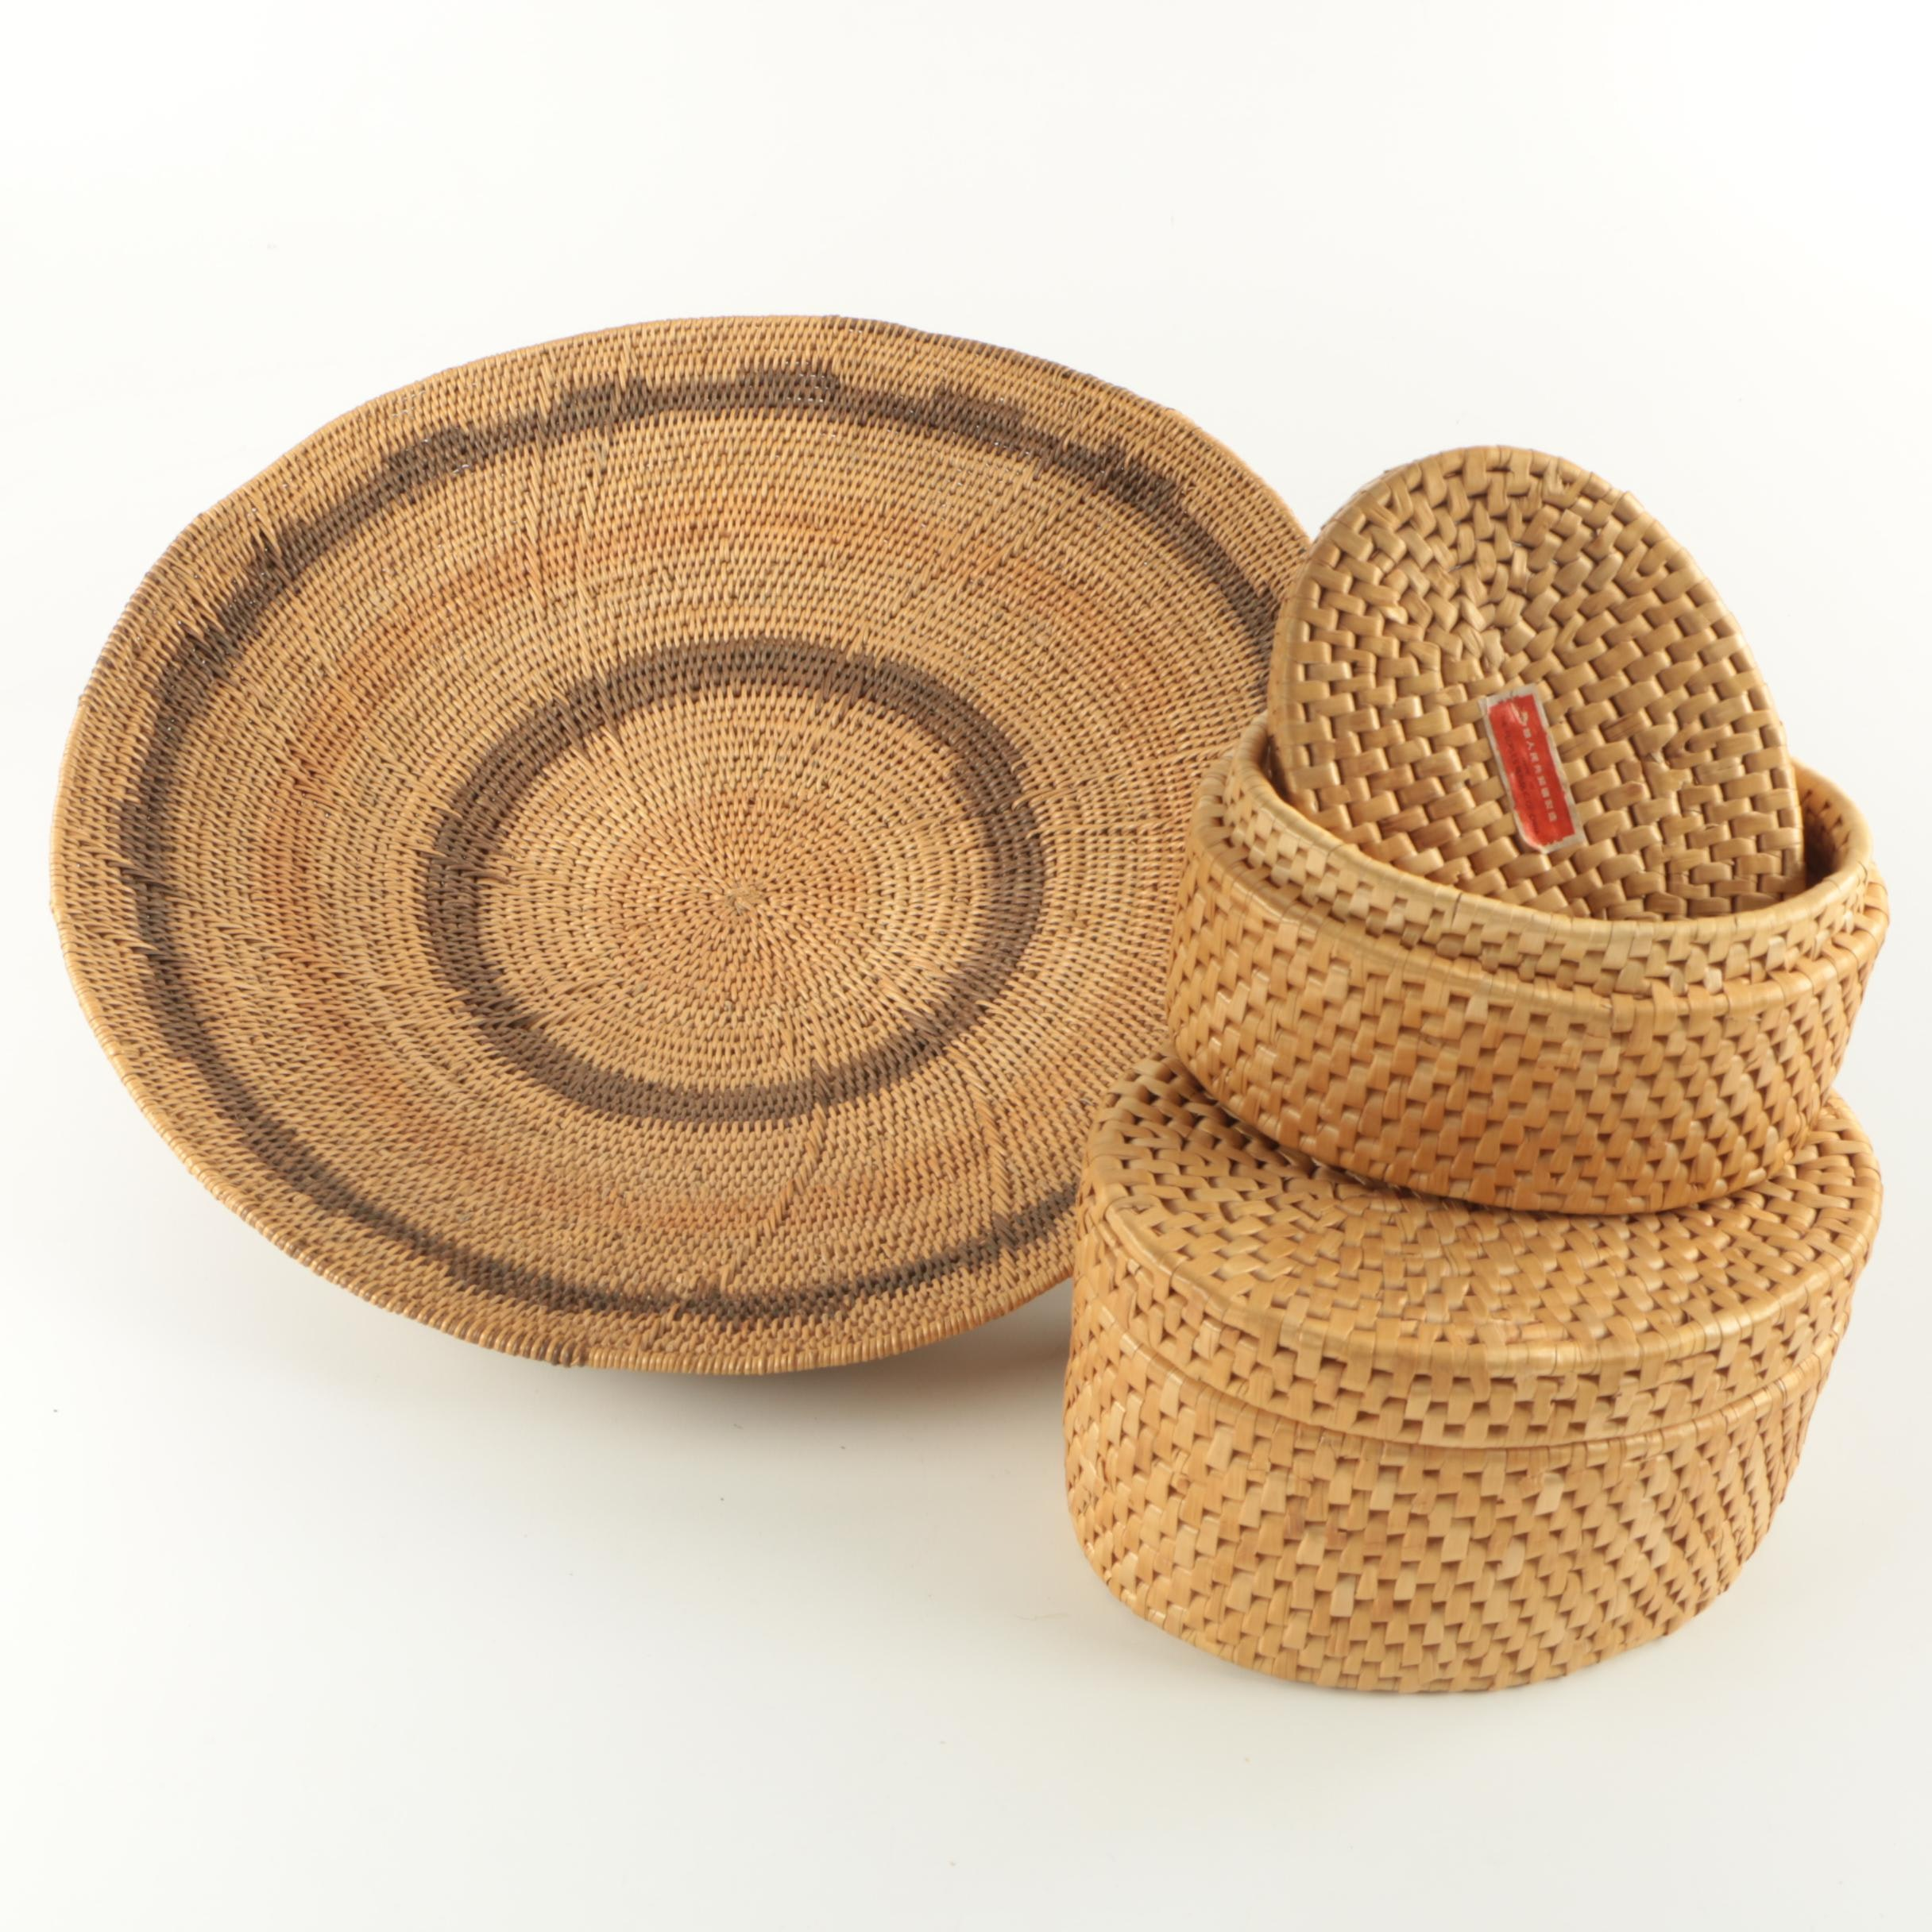 Chinese Woven Baskets